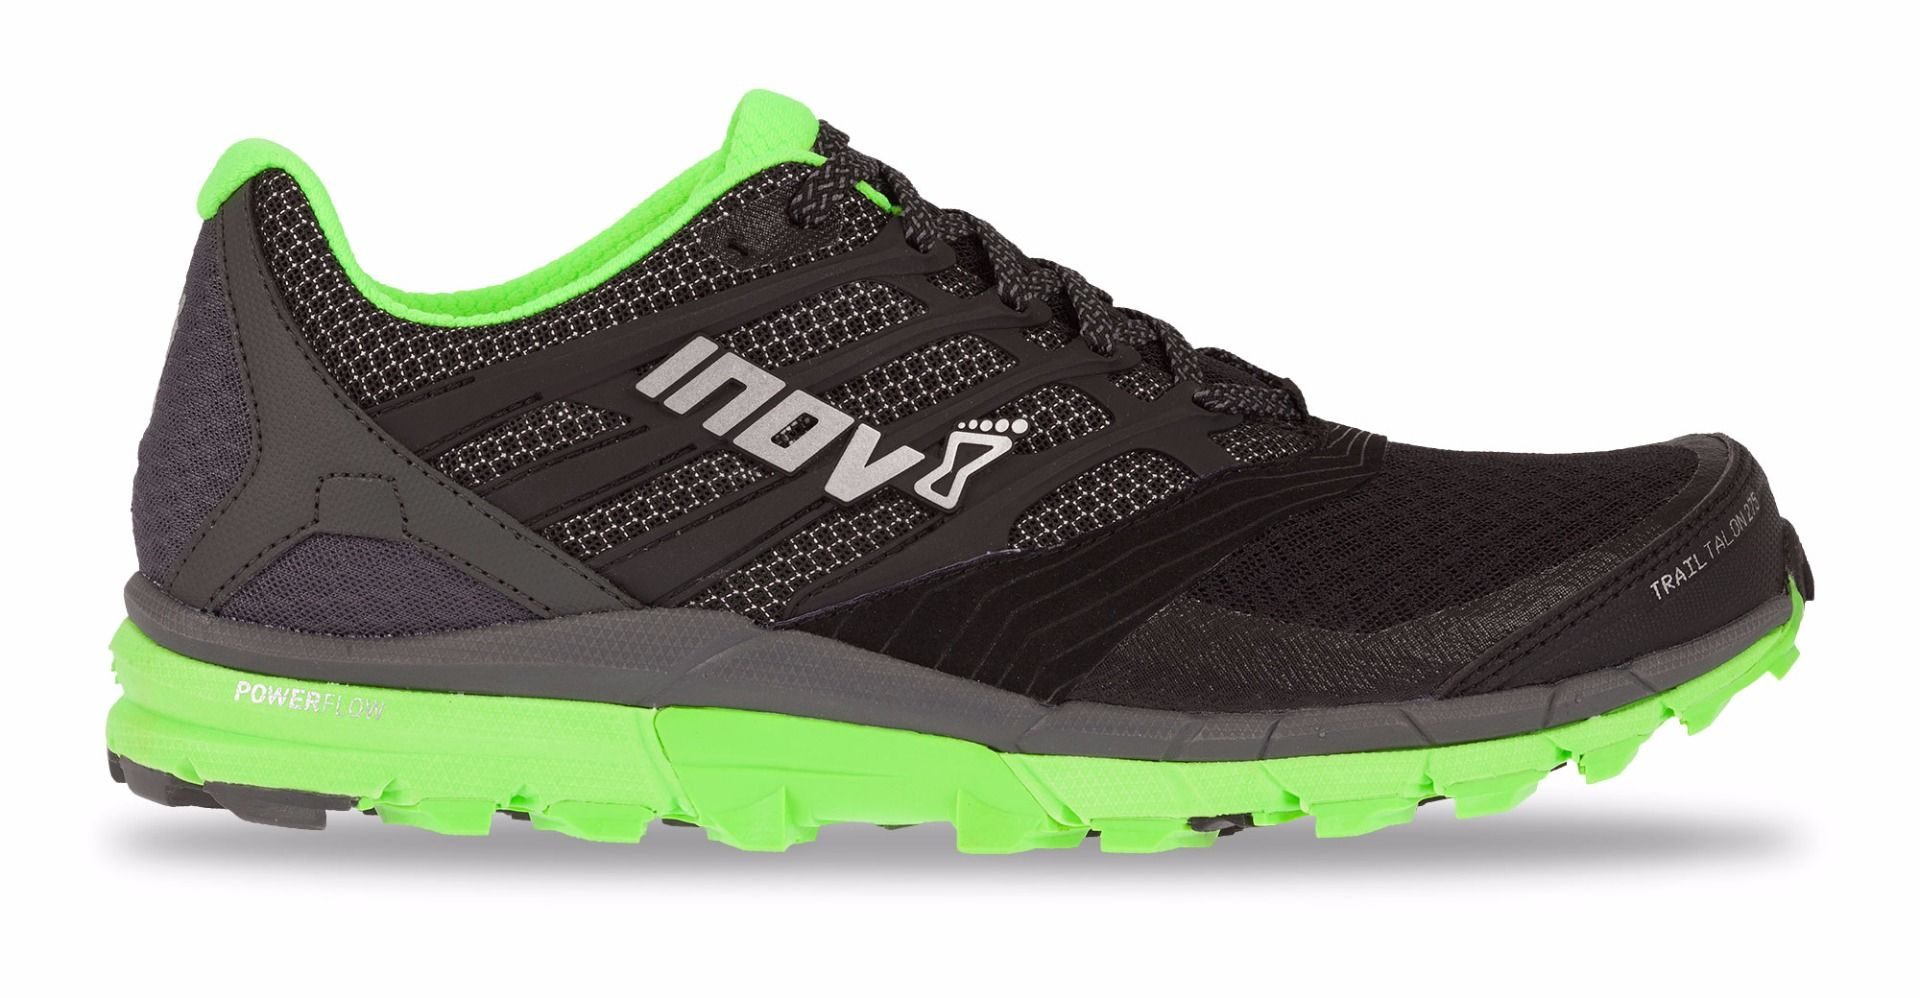 Inov-8 Trail Talon 275 Shoes